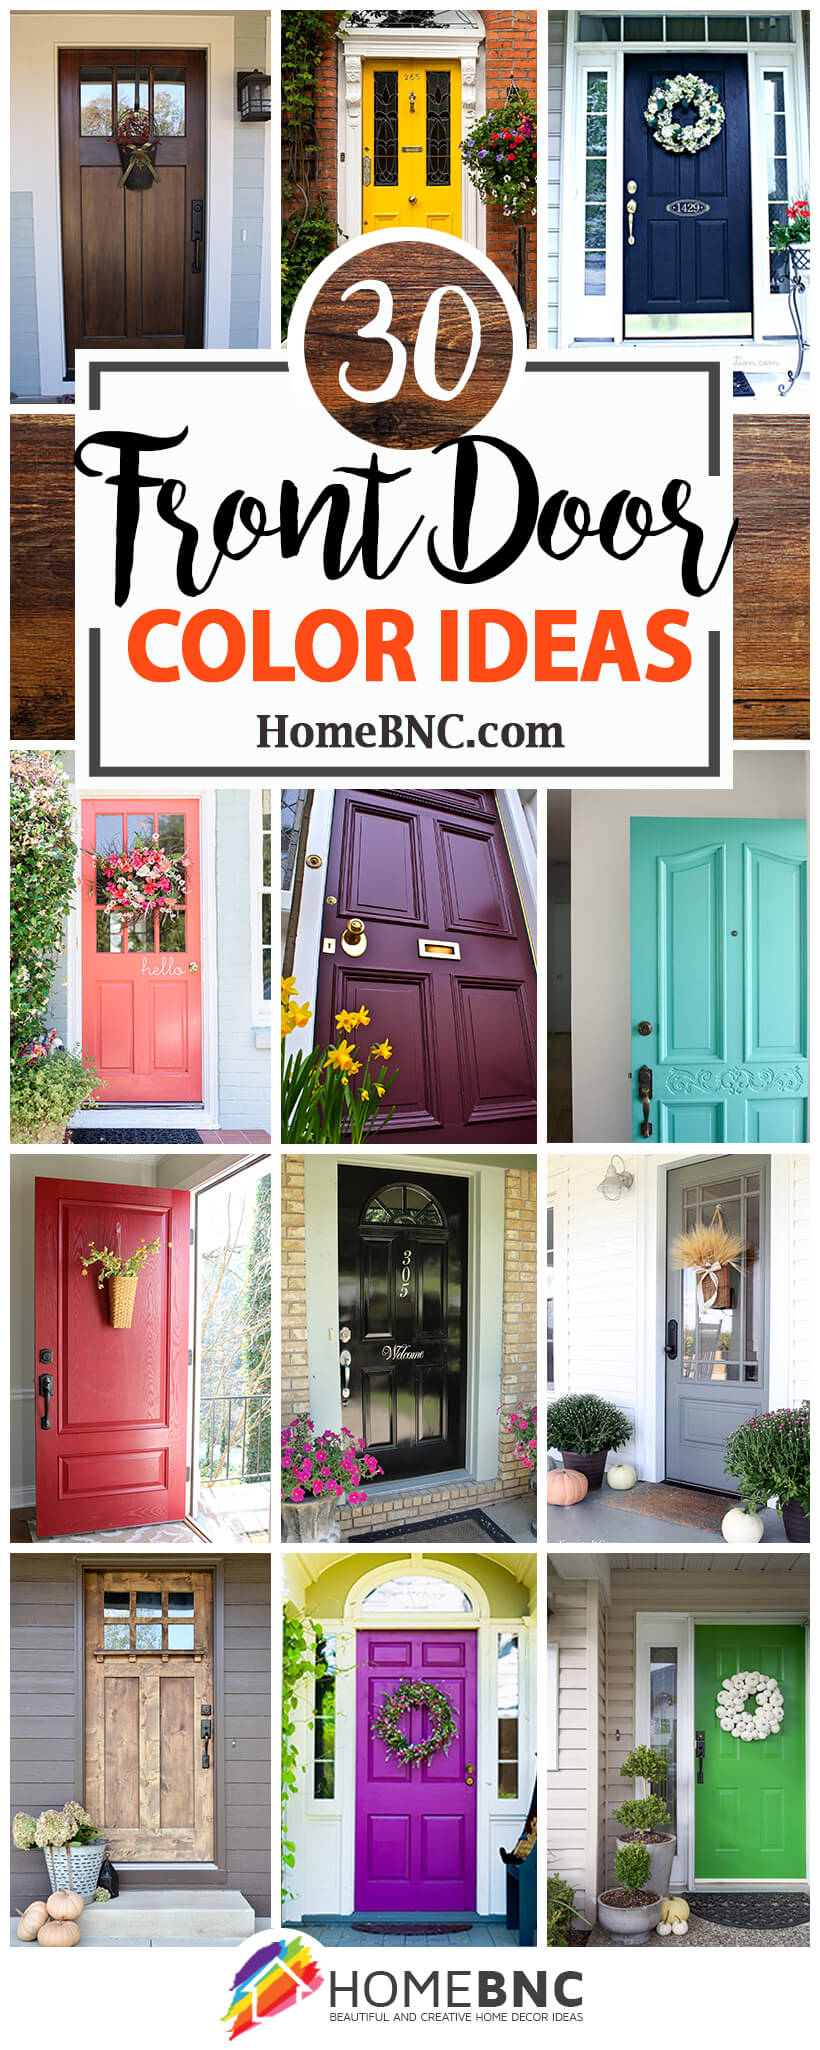 Attirant 30 Amazing Front Door Color Ideas For A Cute And Kitschy Home